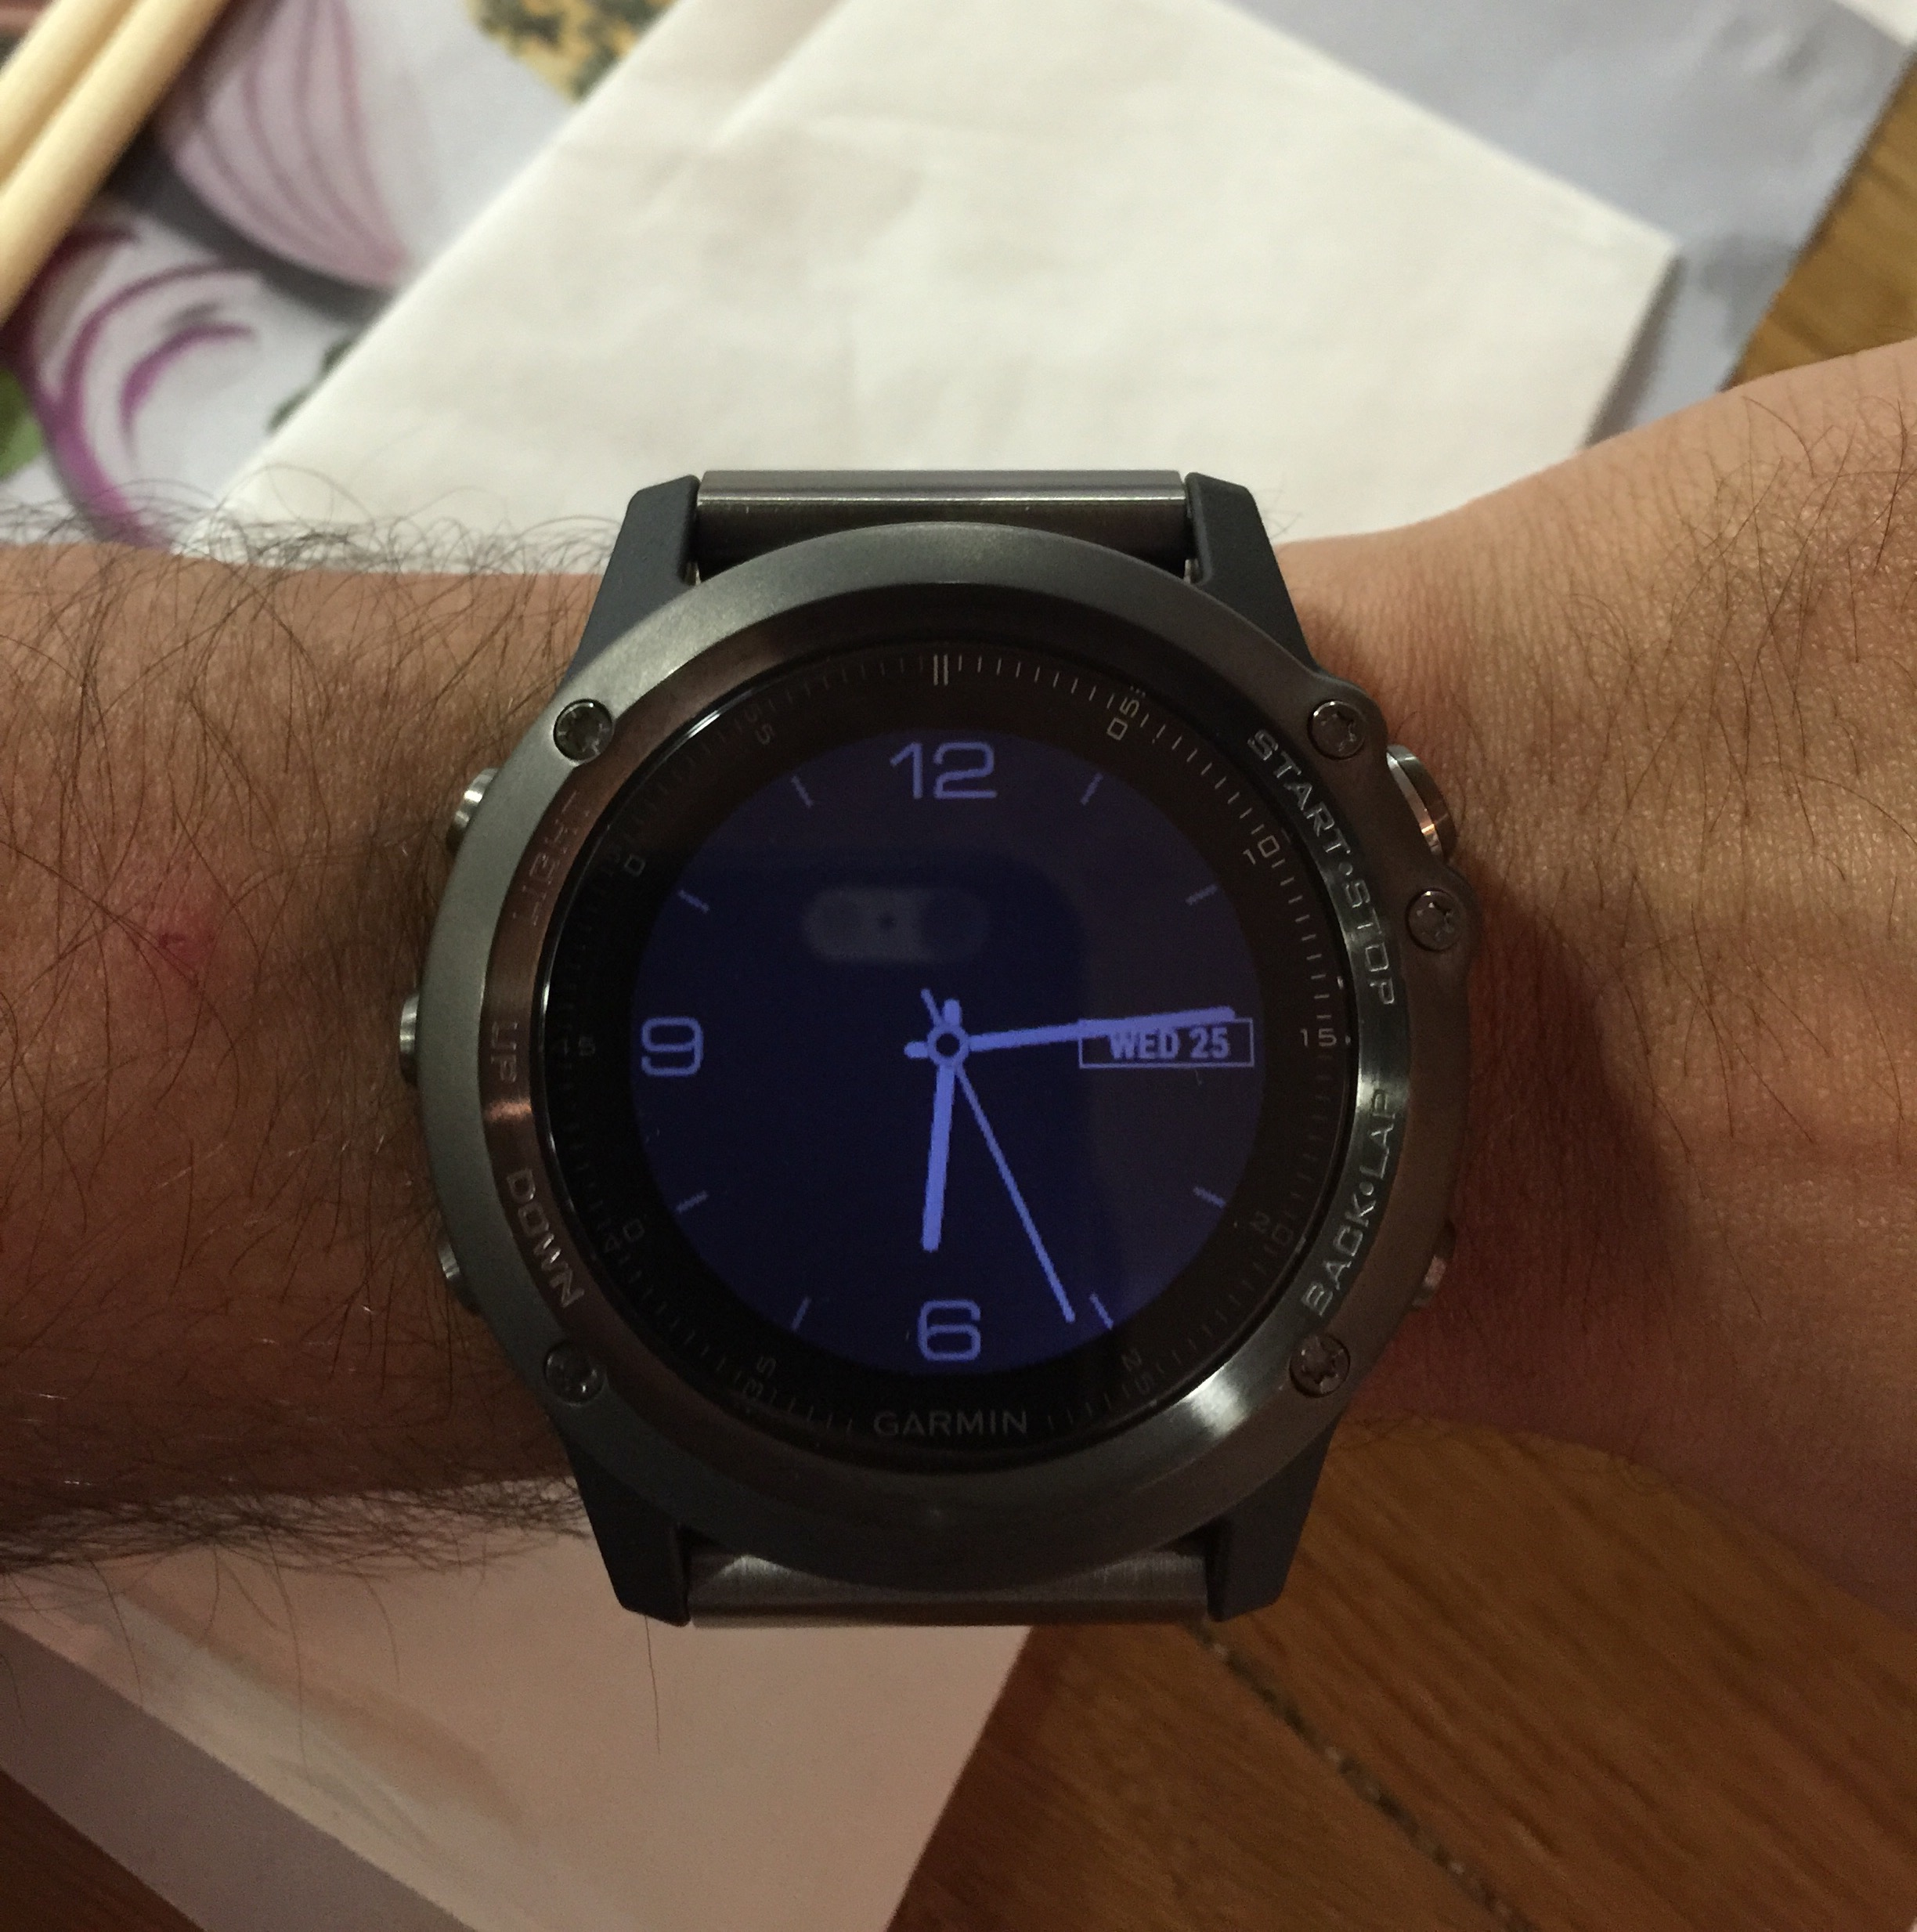 fenix youtube the vs watch sapphire difference garmin what s